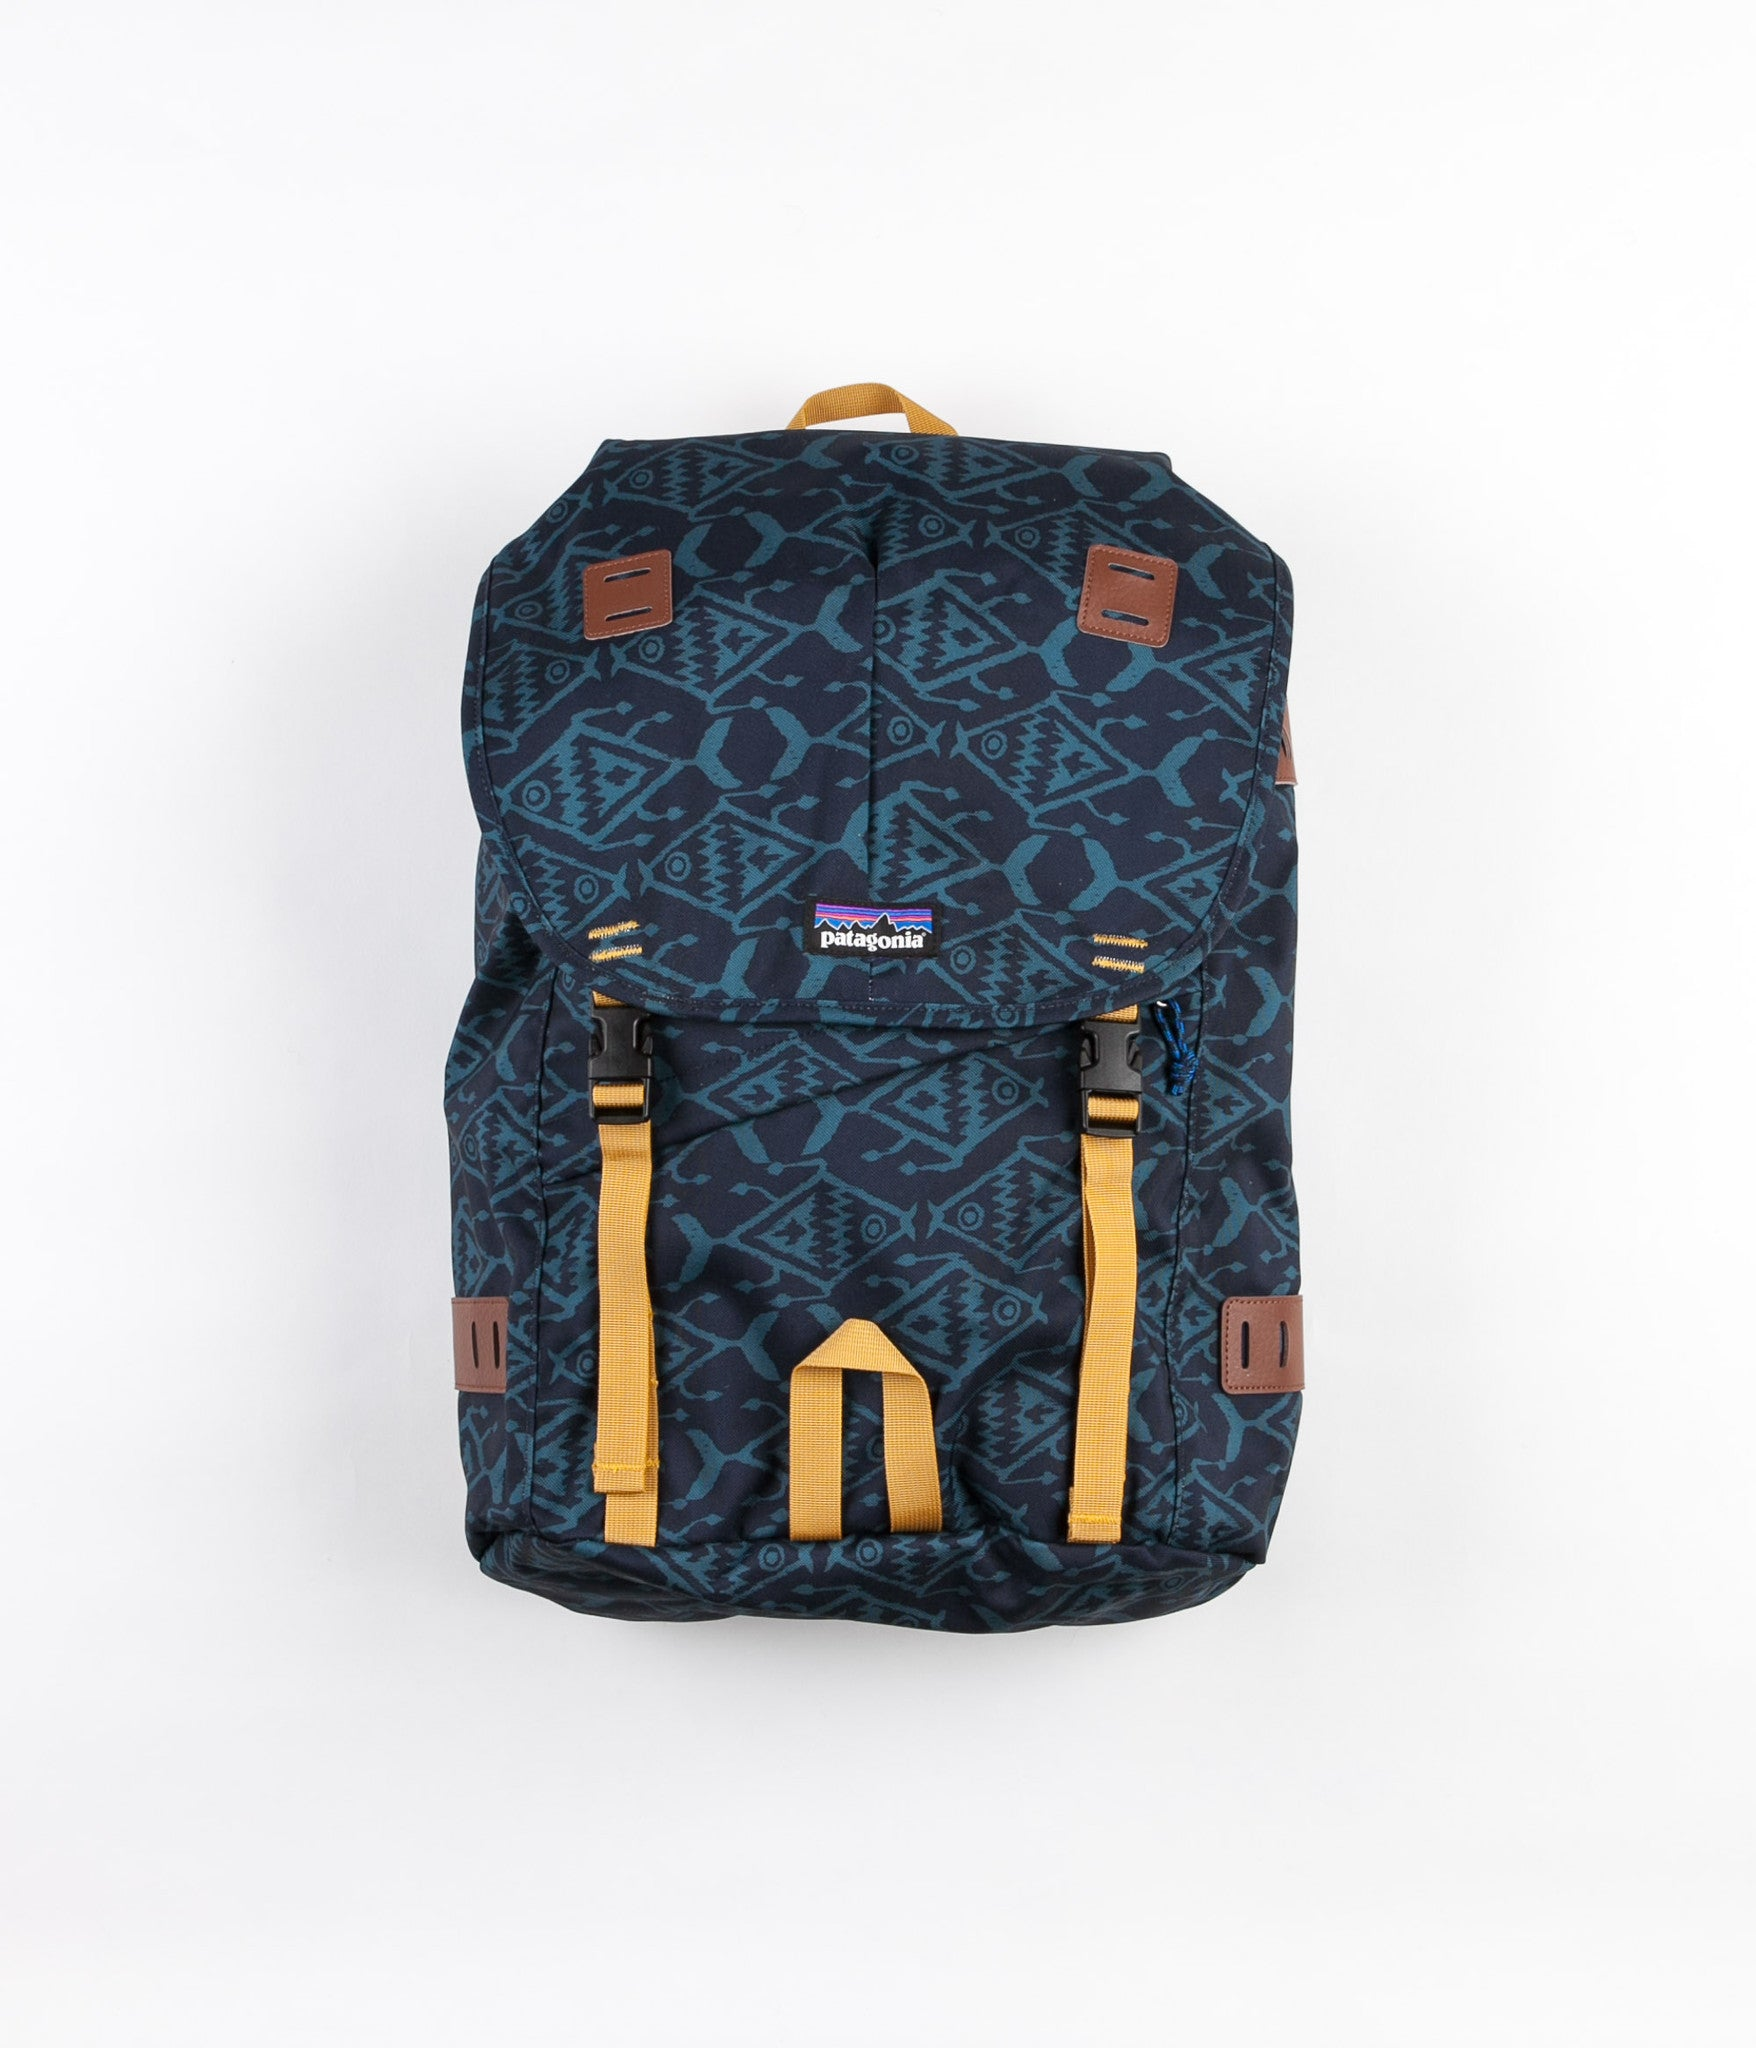 Patagonia Arbor Backpack - Ikat Fish Small / Bay Blue